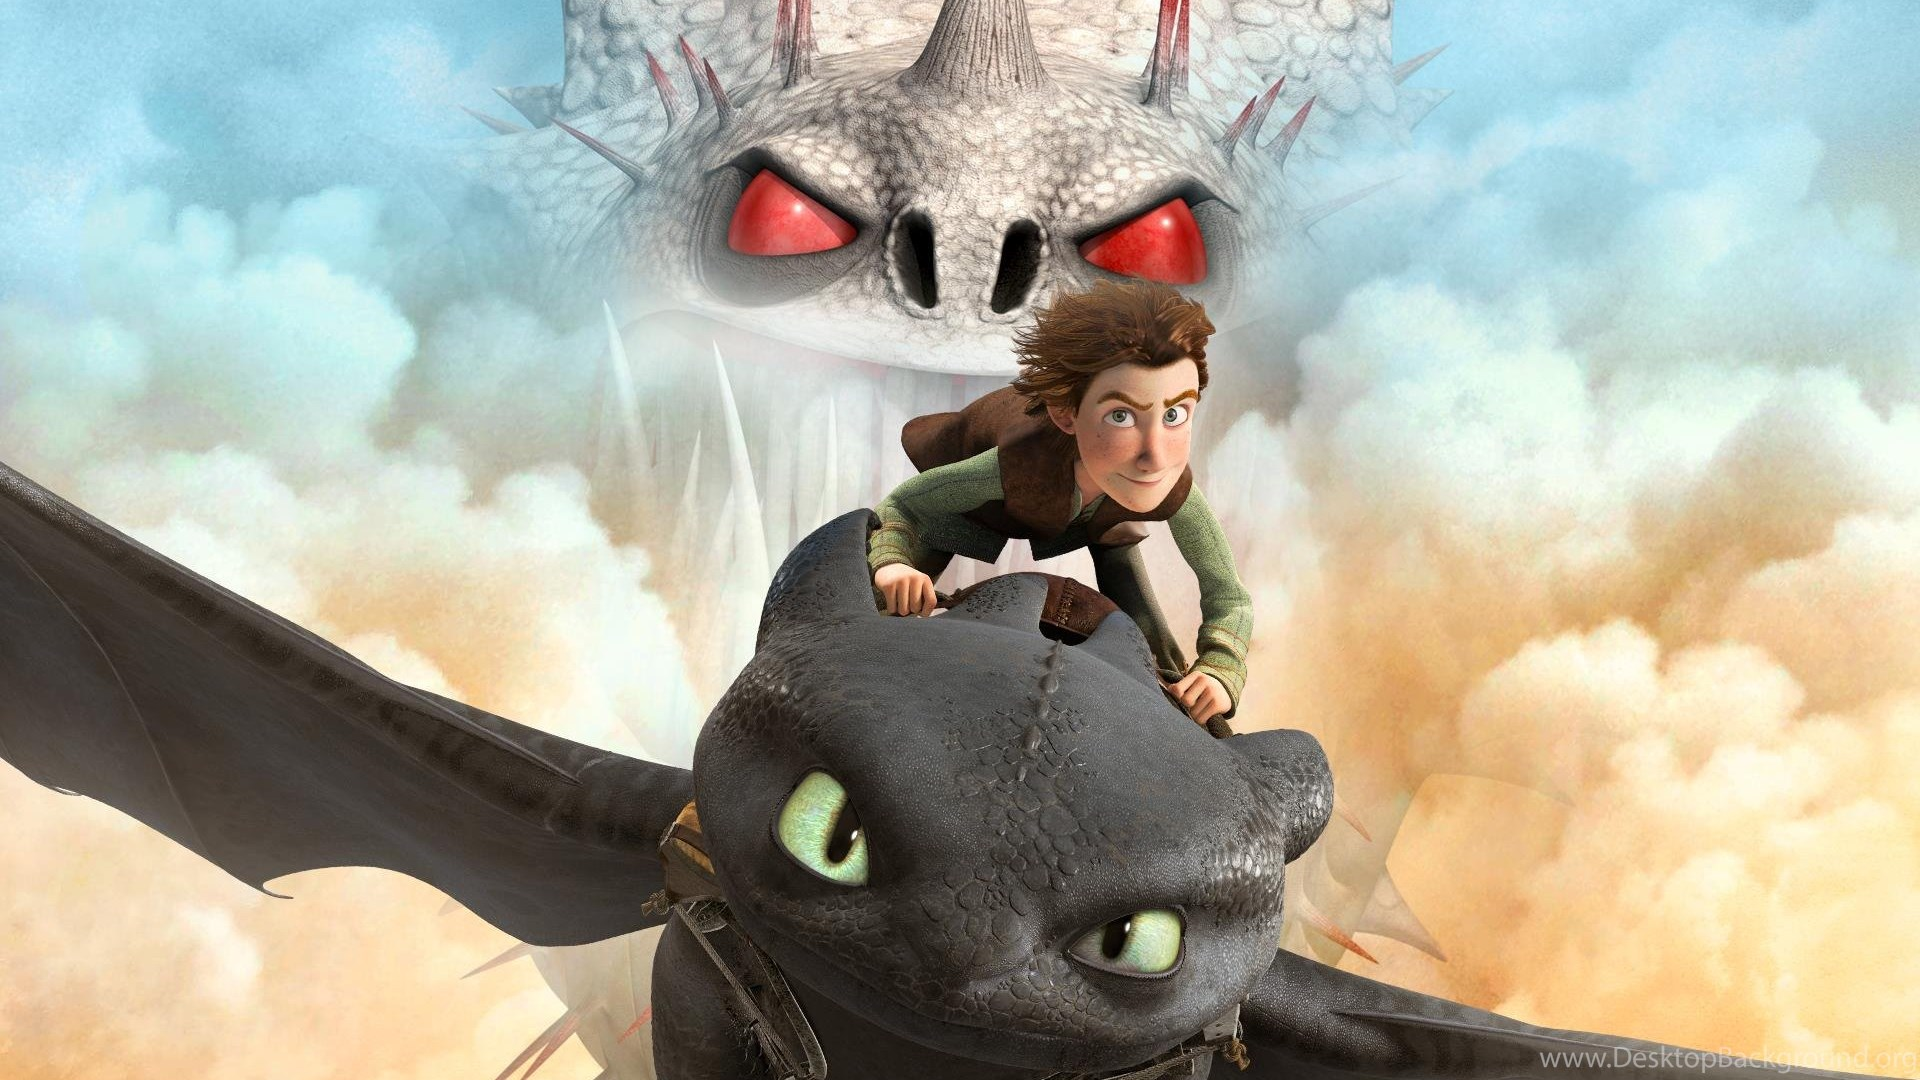 How To Train Your Dragon 2 Wallpapers 1680x1050 Desktop